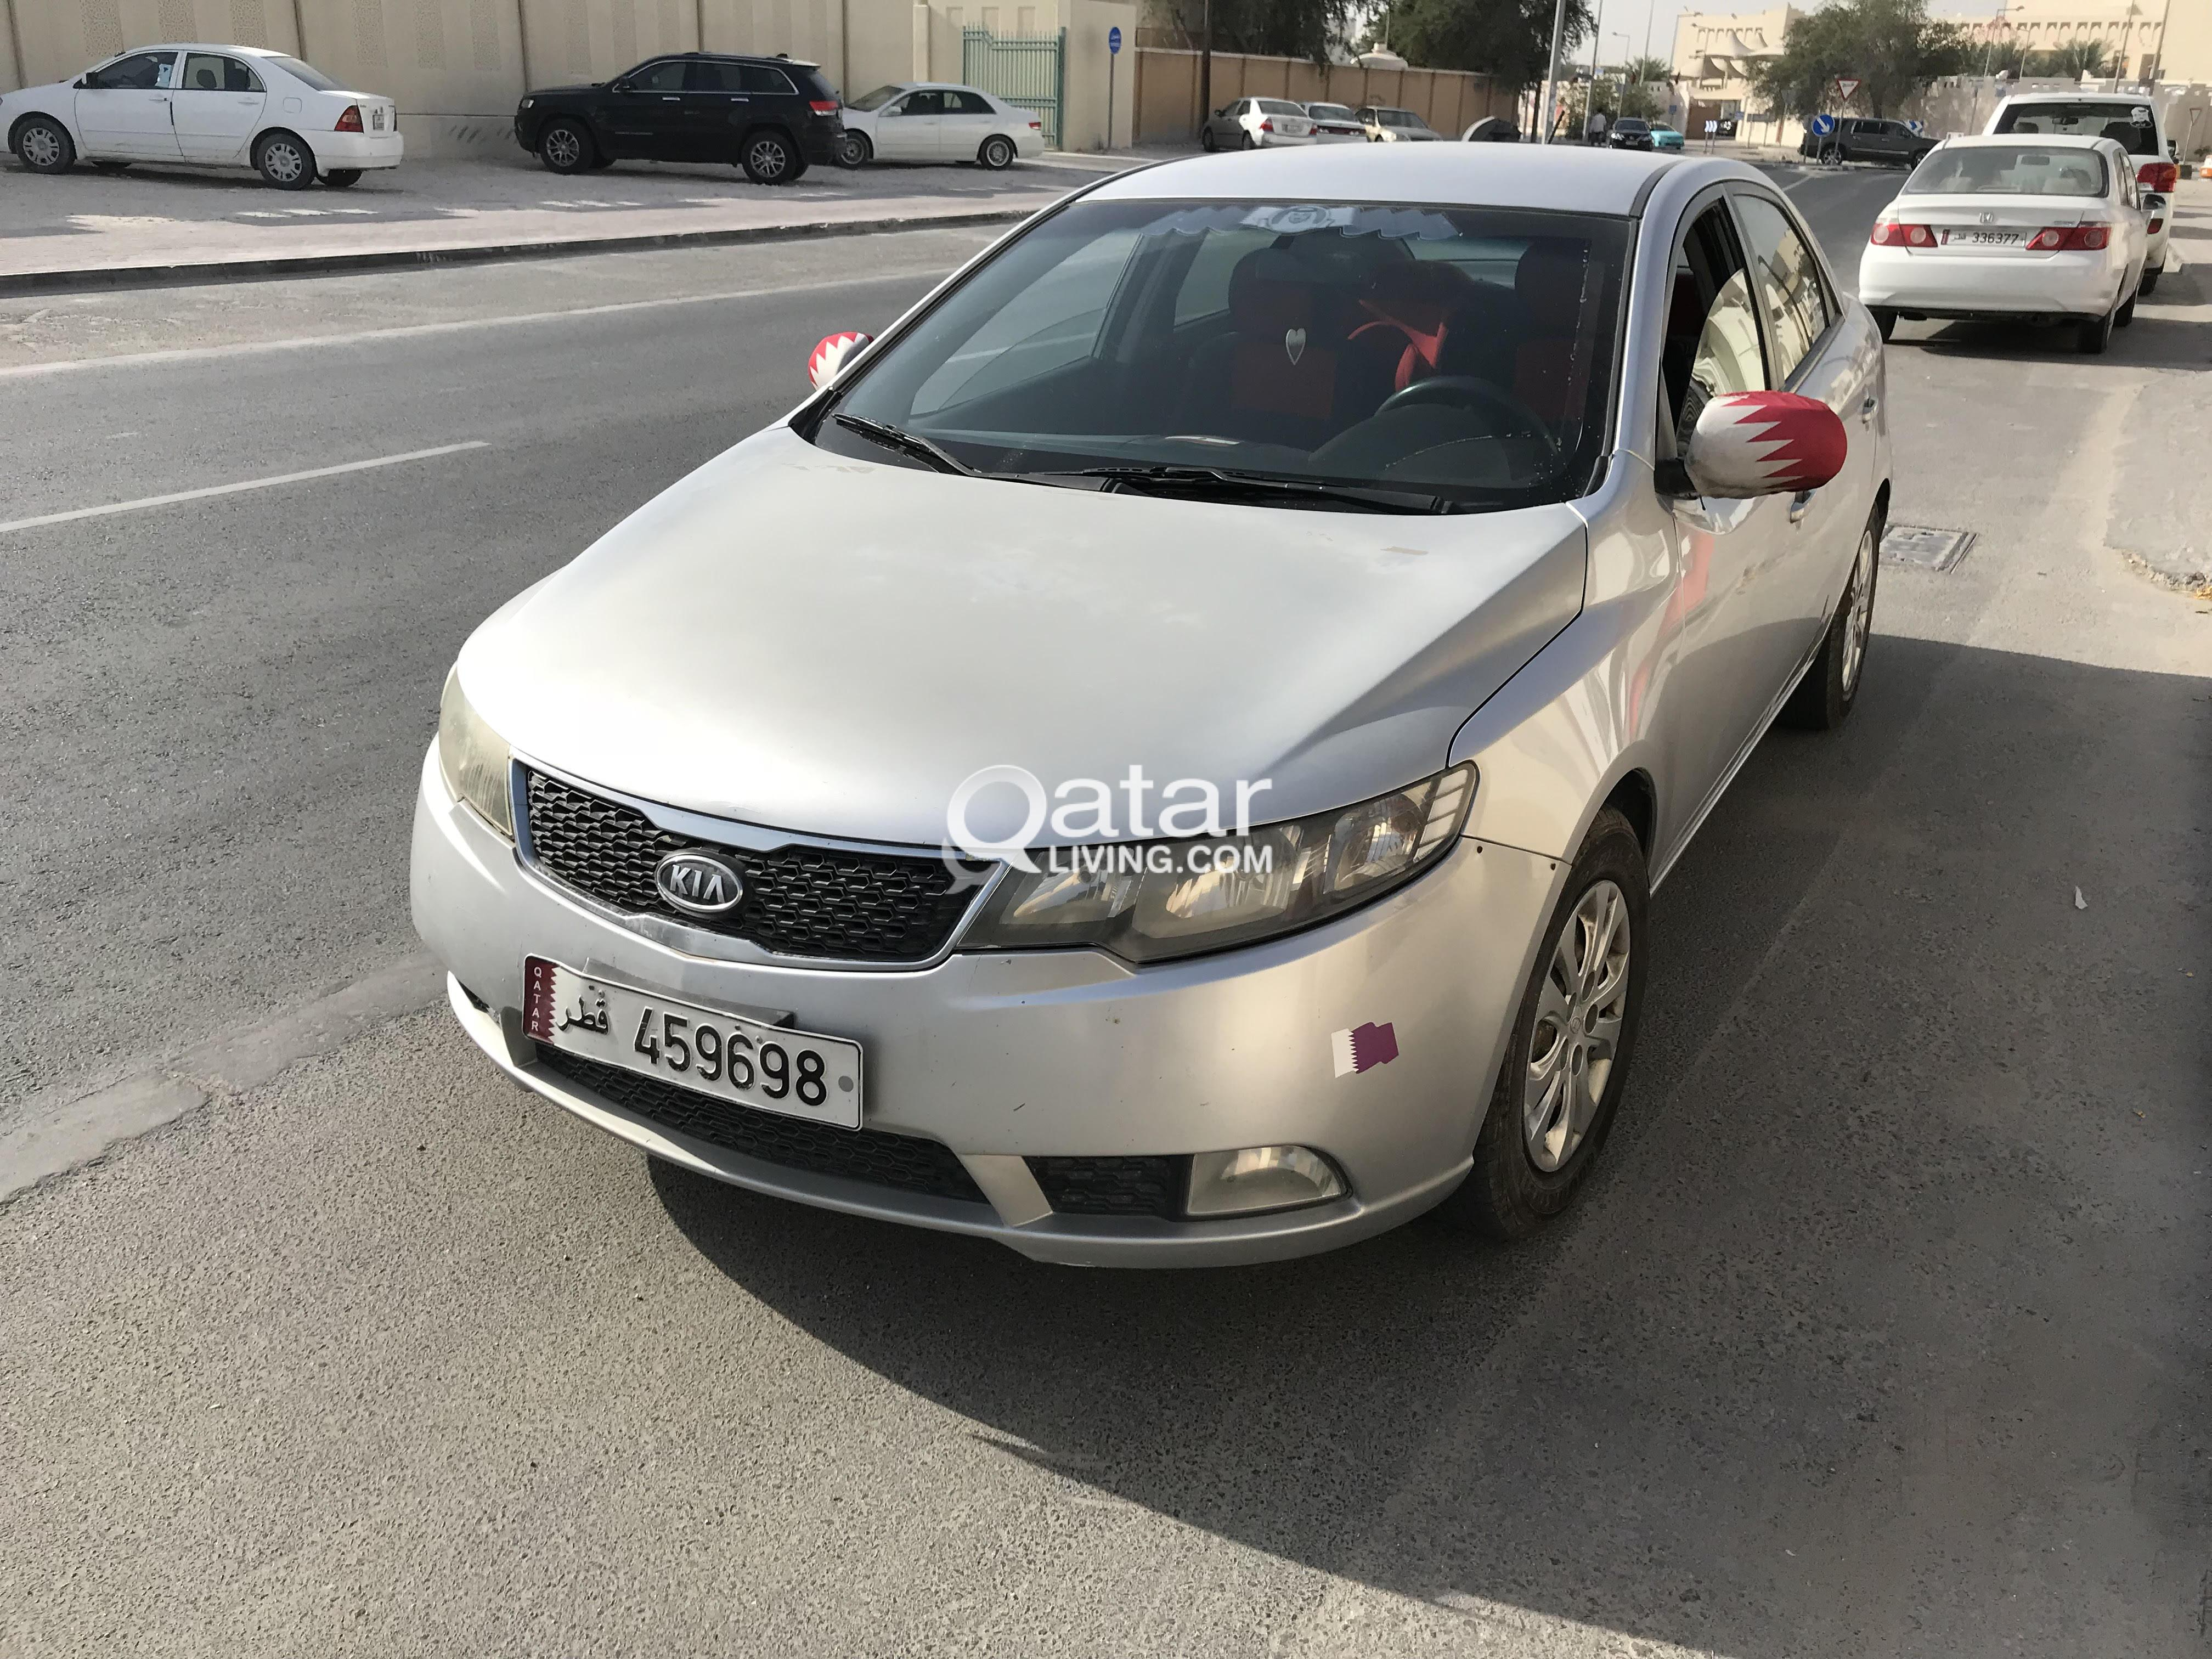 unnamed.jpg?Jb15IWVdnB7nczNQc5pYD Interesting Info About Kia forte Ex 2010 with Interesting Images Cars Review